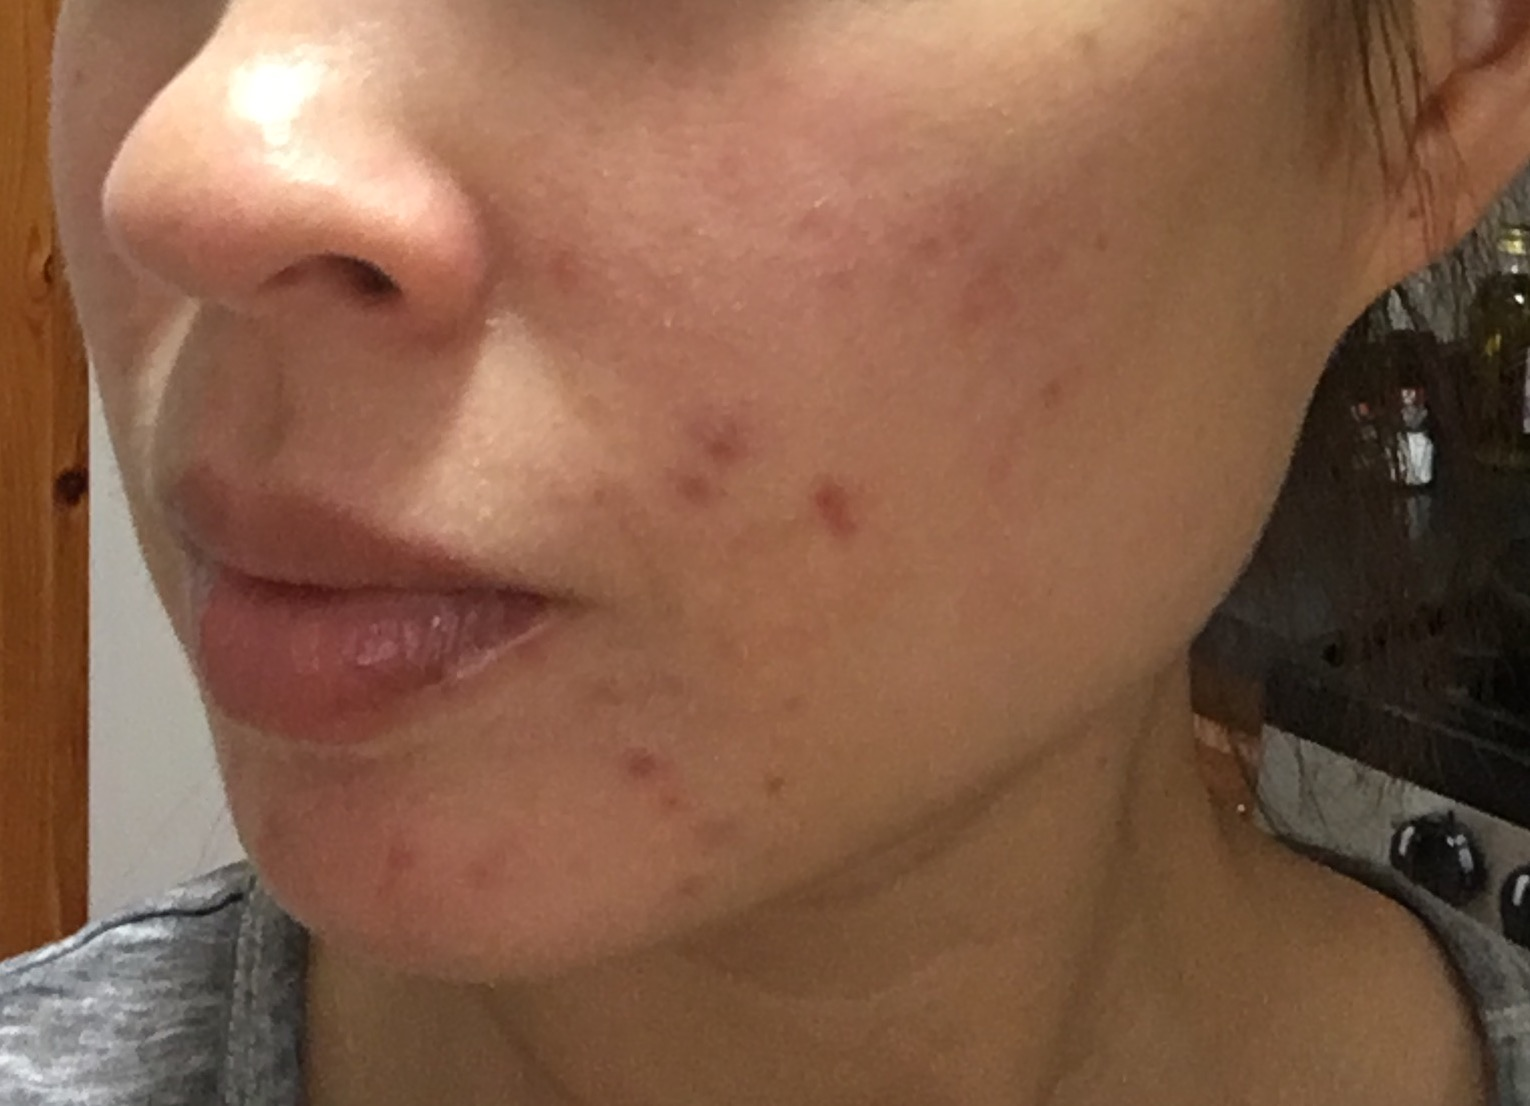 RSL Differin Journal - Acne.org Community